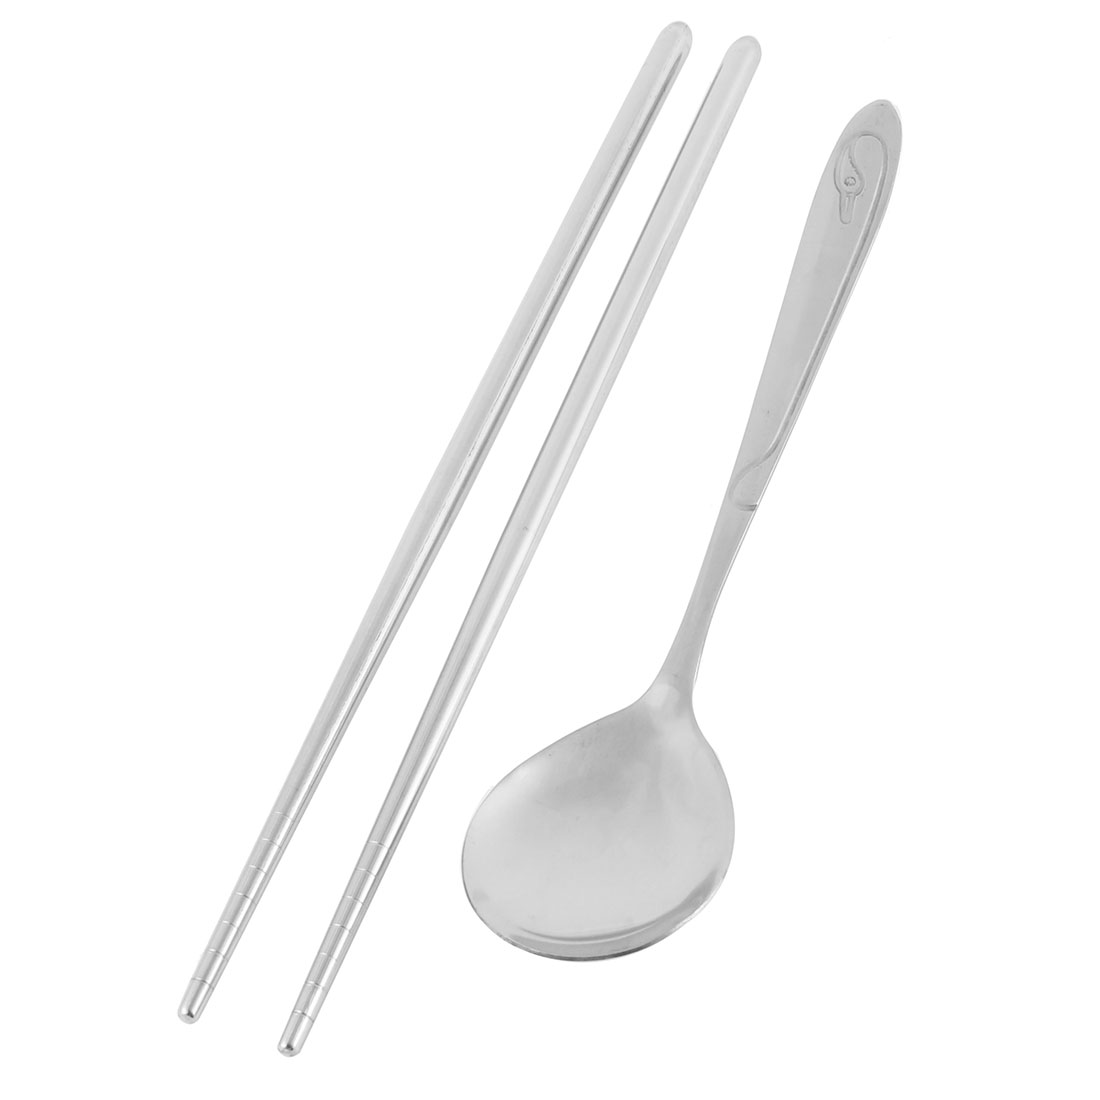 Household Dishware Set Nonslip Handle Stainless Steel Chopsticks Spoon